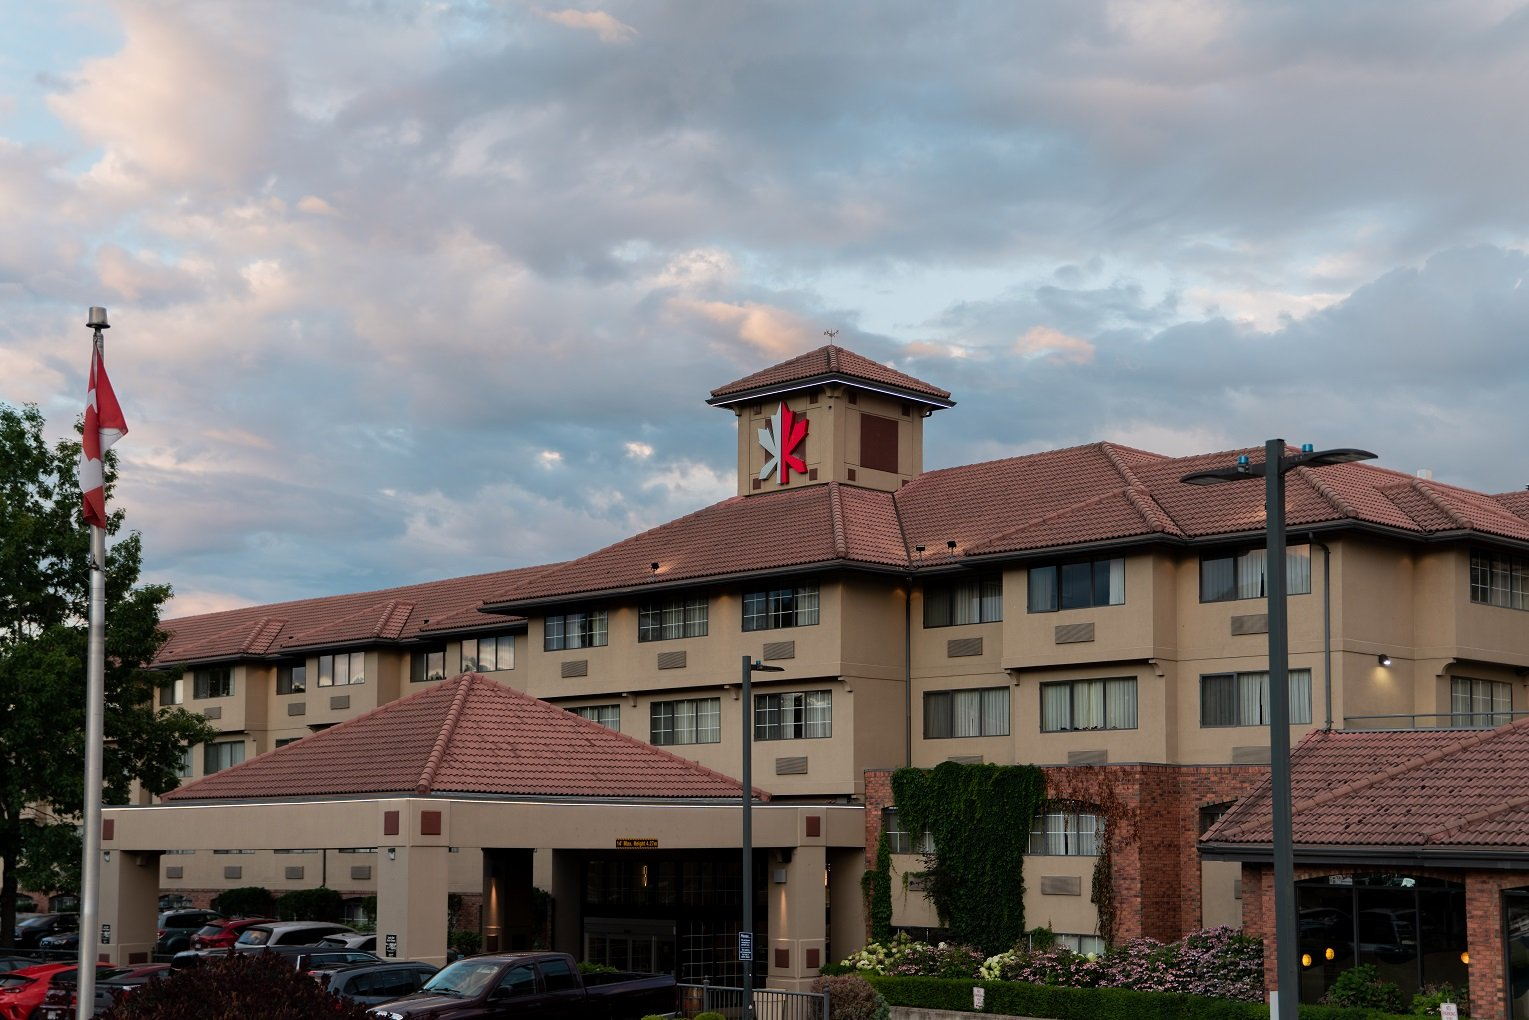 exterior of Kanata Inns Kelowna travelling Kelowna on a budget